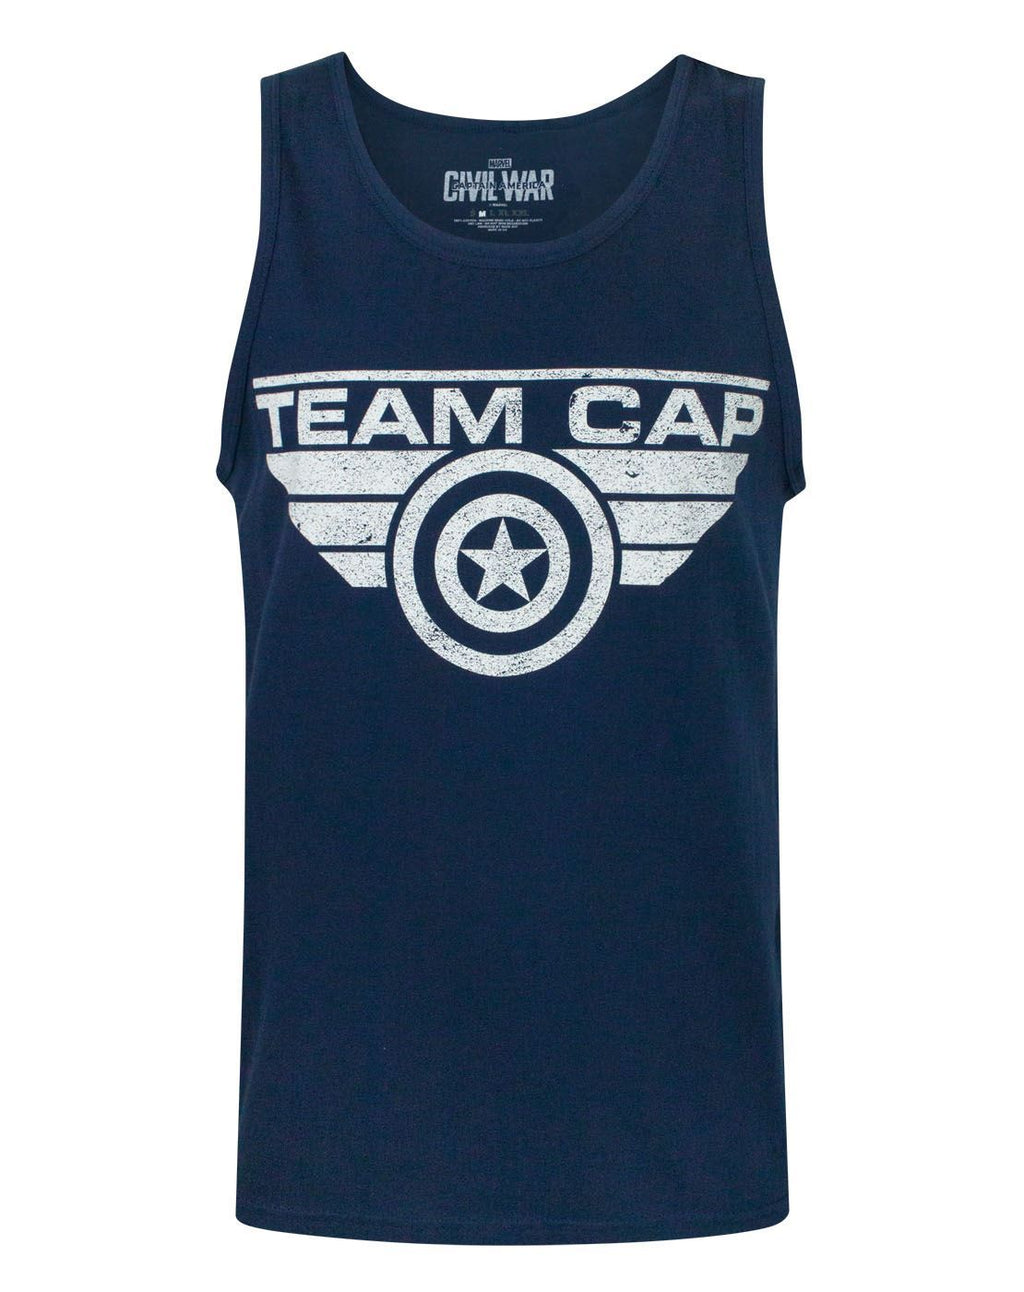 Captain America Civil War Team Cap Distressed Men's Vest